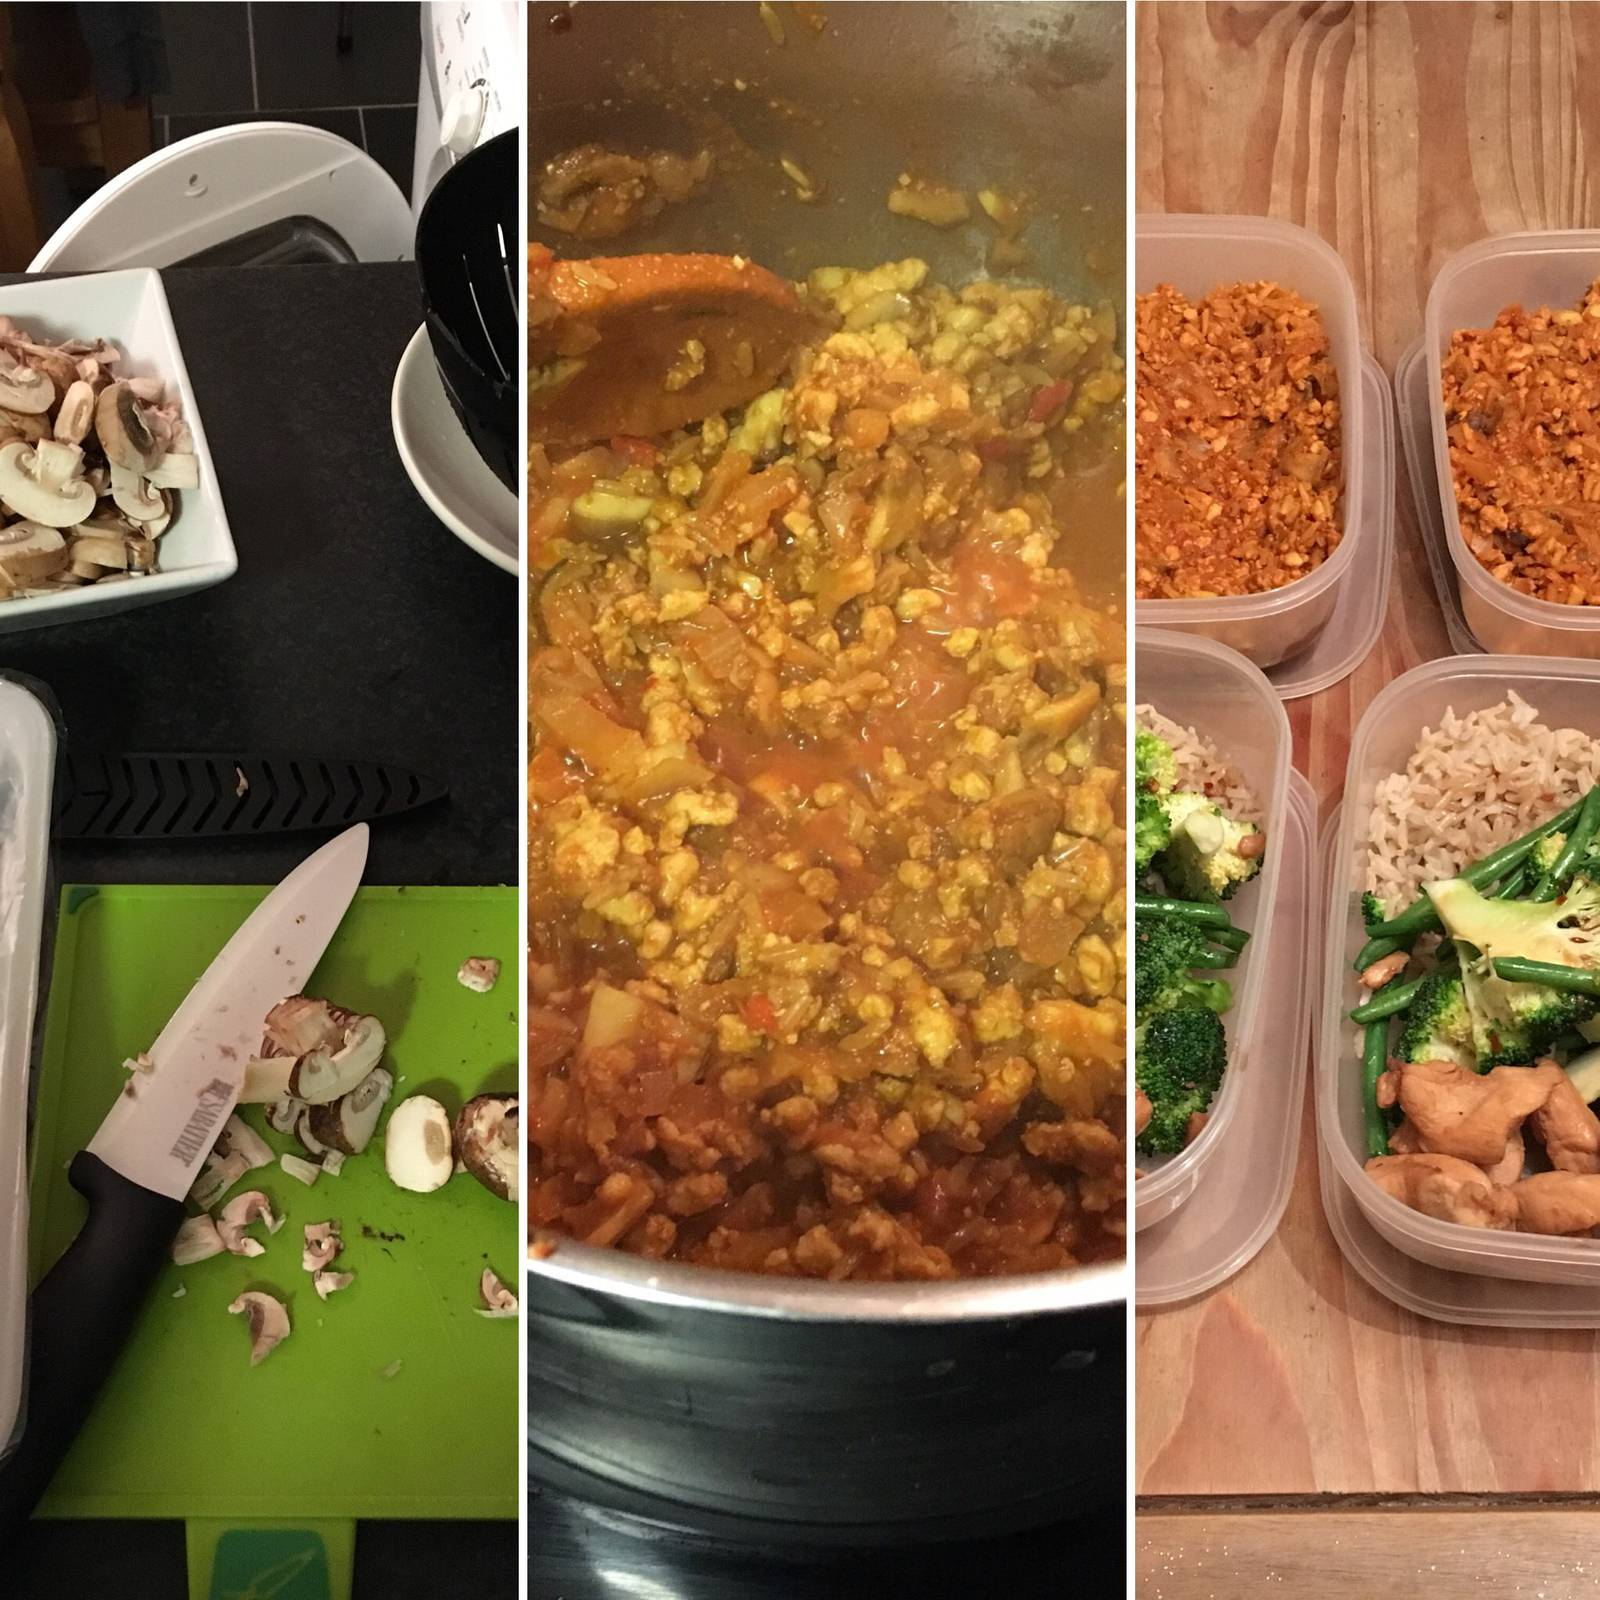 Montage of food prep with chili